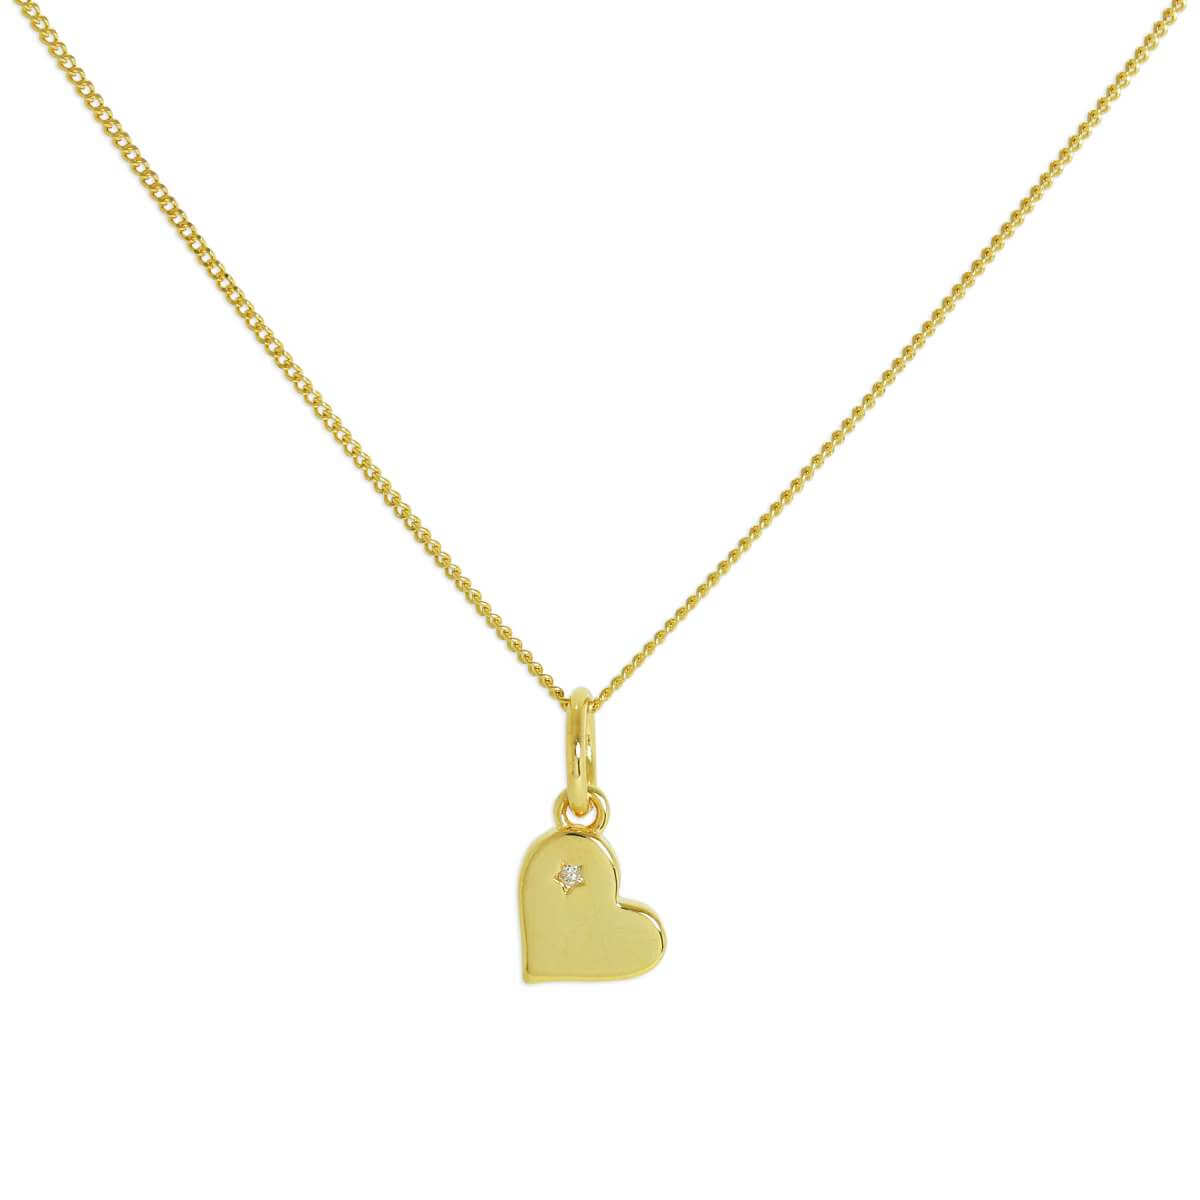 Gold Plated Sterling Silver & Genuine Diamond Heart Necklace